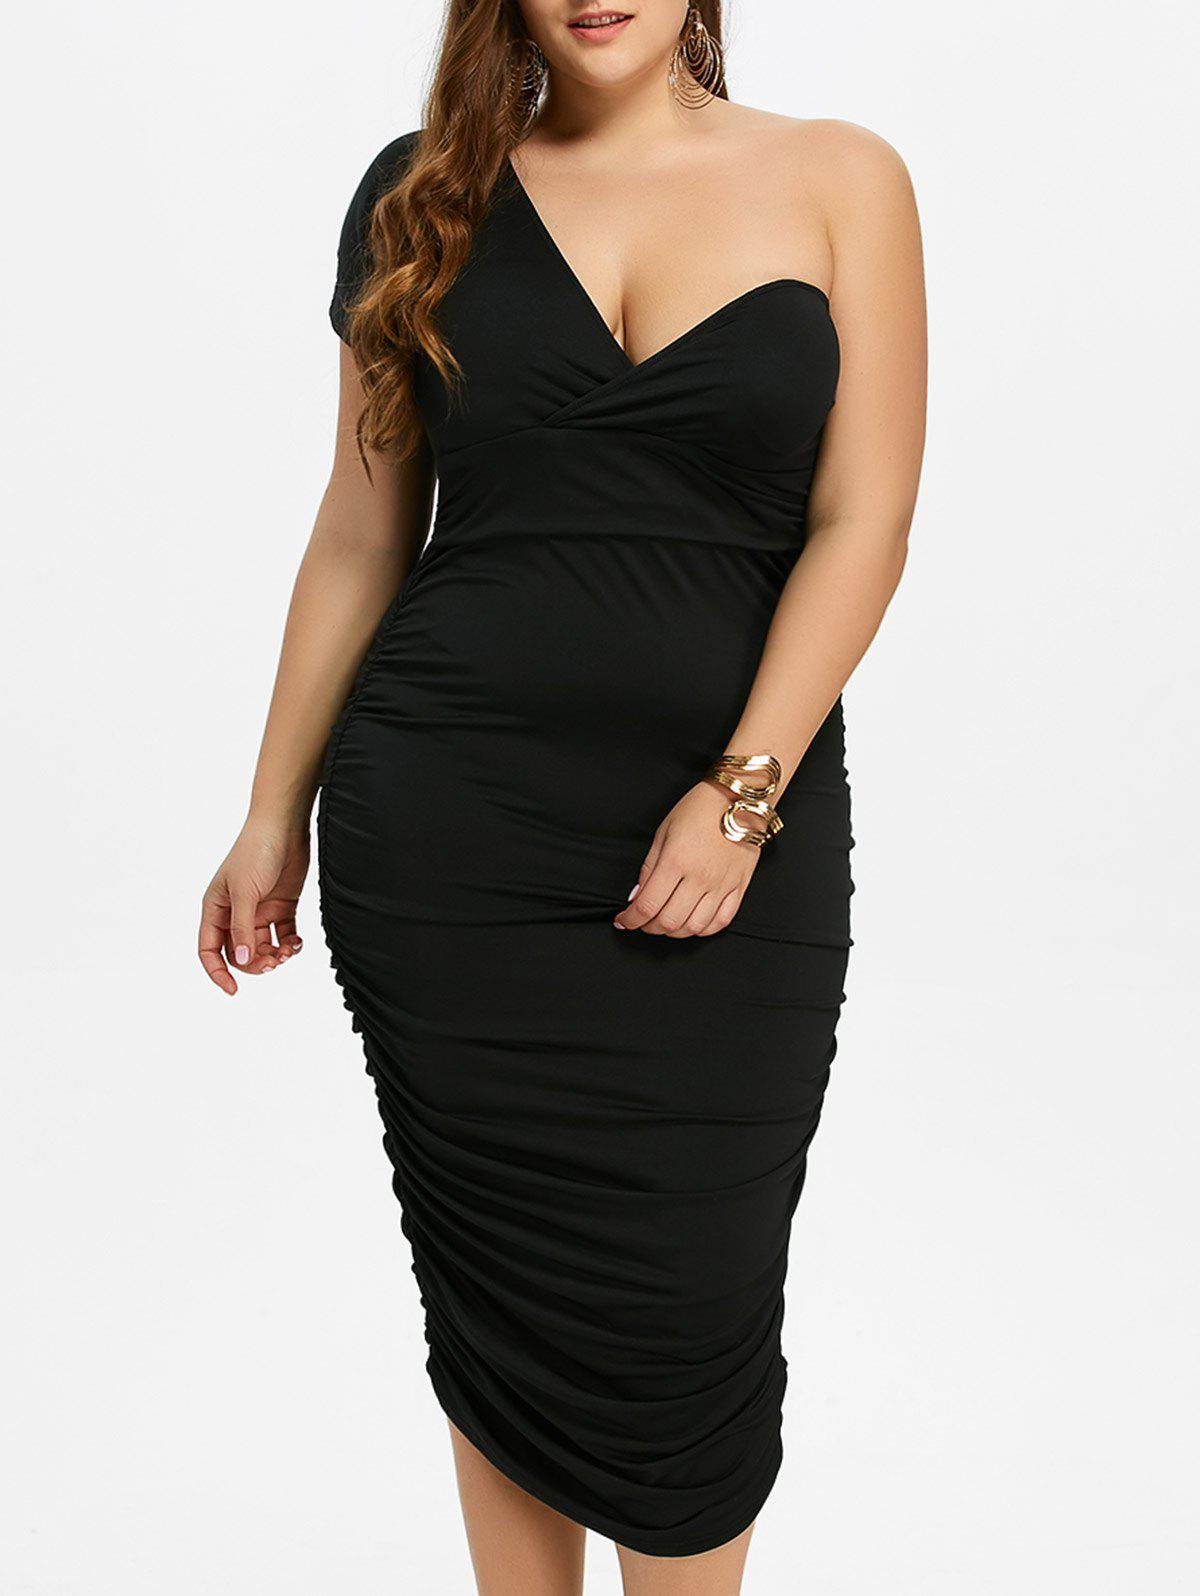 One Shoulder Bodycon Prom Plus Size Cocktail Bandage DressWOMEN<br><br>Size: 3XL; Color: BLACK; Style: Brief; Material: Polyester; Silhouette: Sheath; Dresses Length: Mid-Calf; Neckline: One-Shoulder; Sleeve Length: Short Sleeves; Pattern Type: Solid; With Belt: No; Season: Fall,Spring,Summer; Weight: 0.3700kg; Package Contents: 1 x Dress;